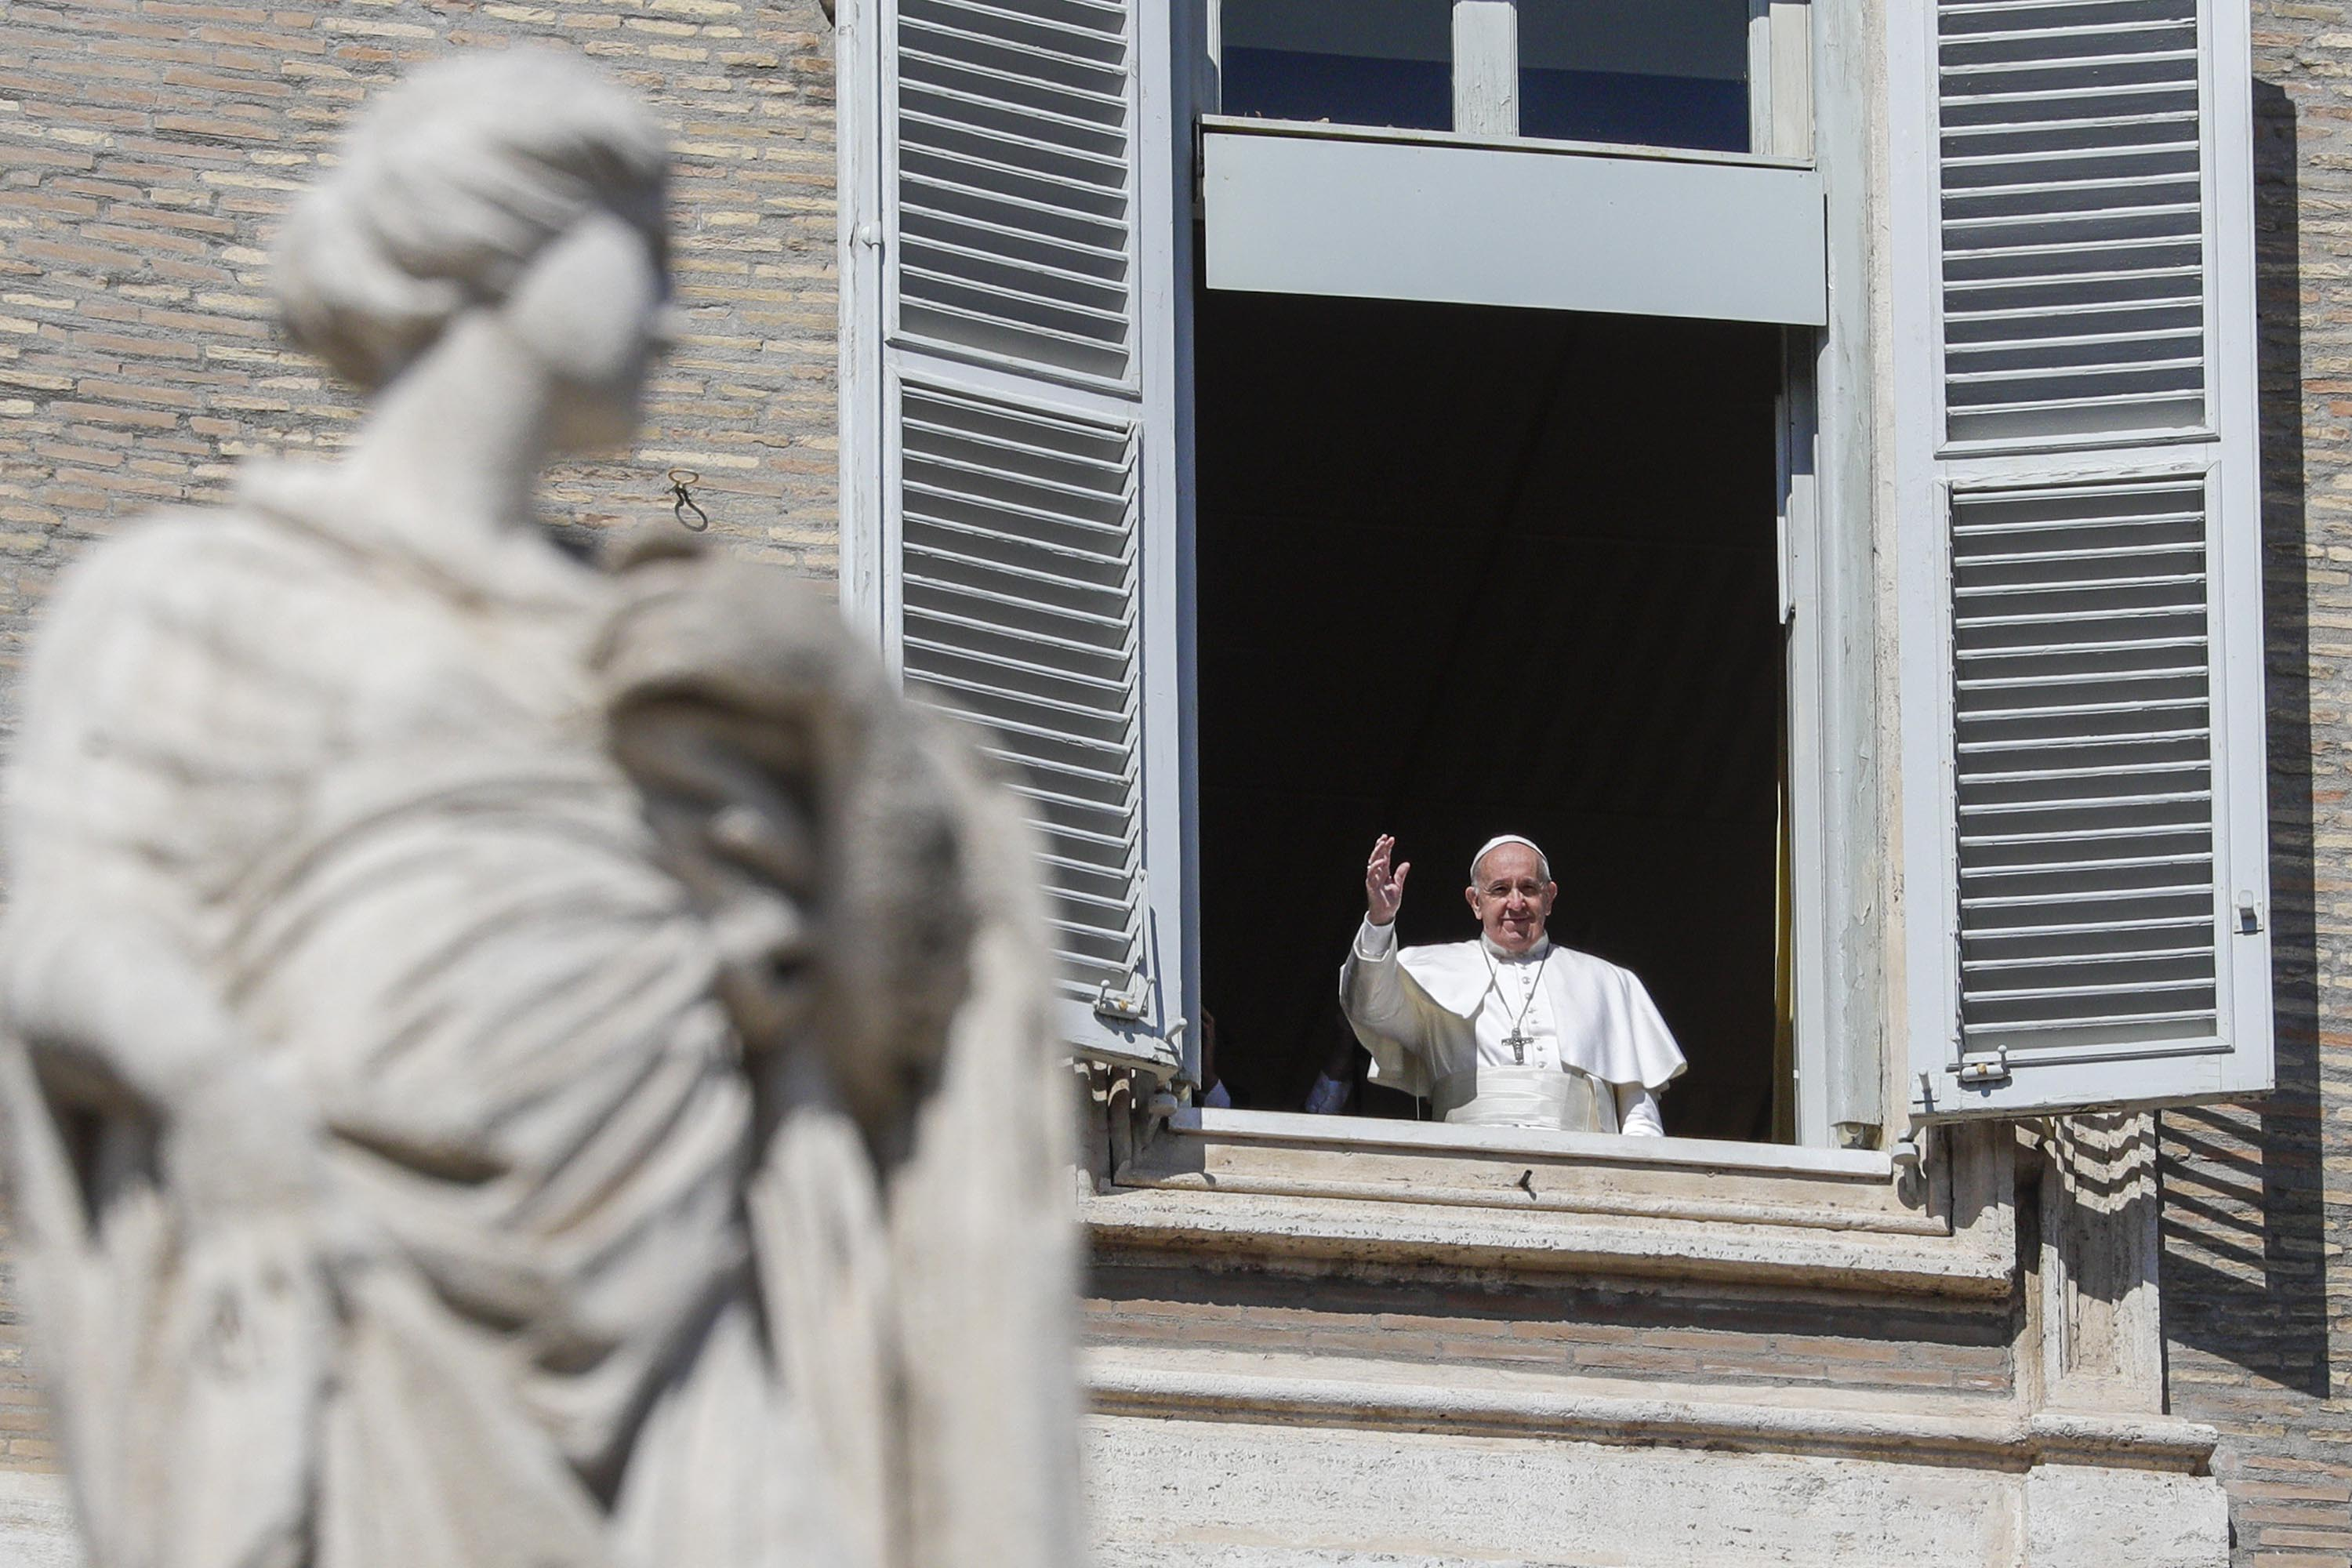 Pope Francis waves from a window overlooking St. Peter's Square at the Vatican on March 8.